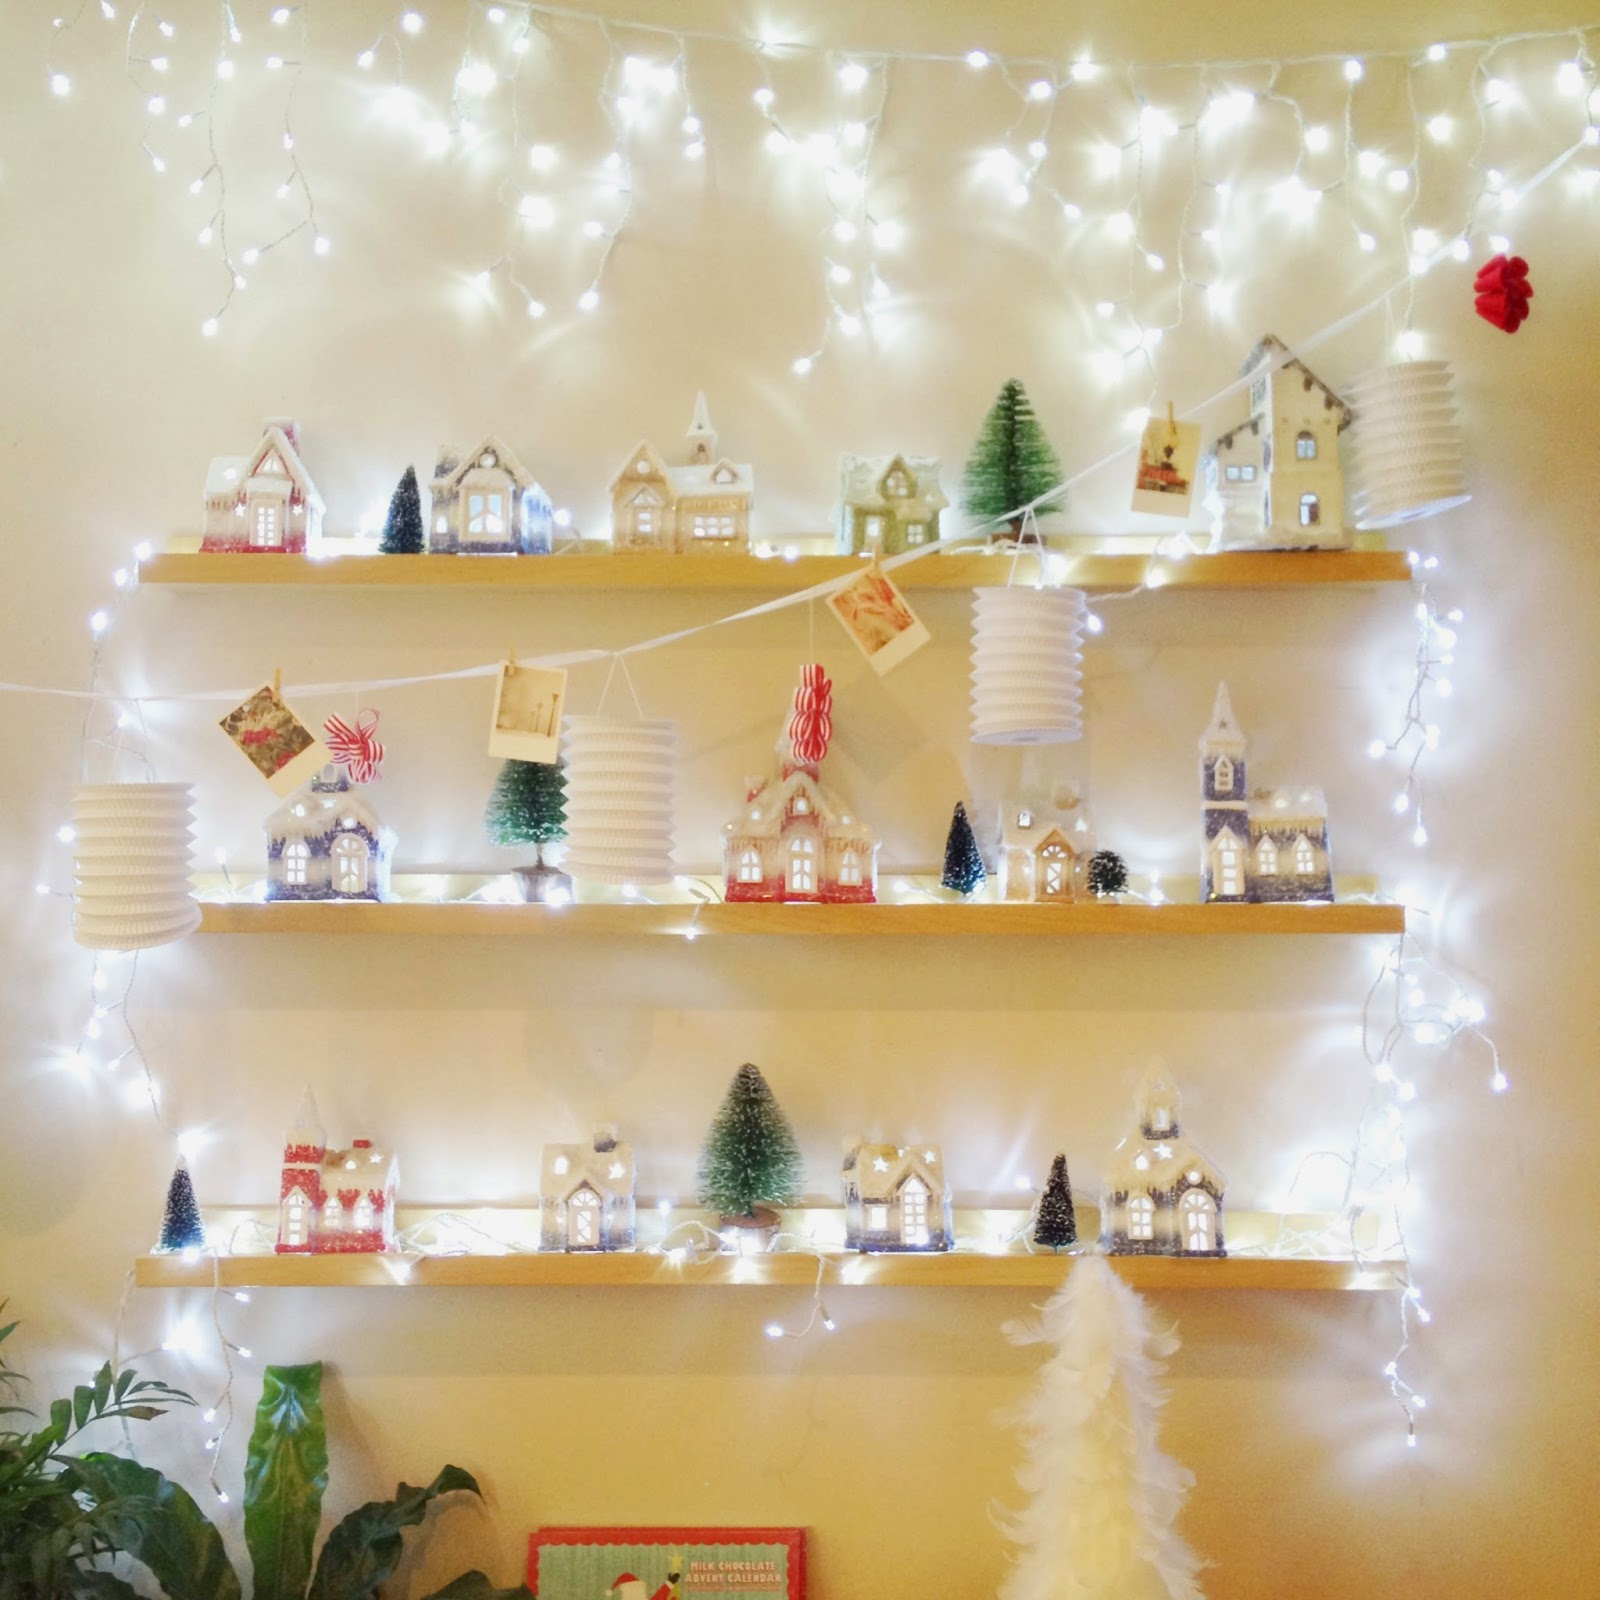 Tania McCartney Blog: happy merry everything! Christmas decorating 2014